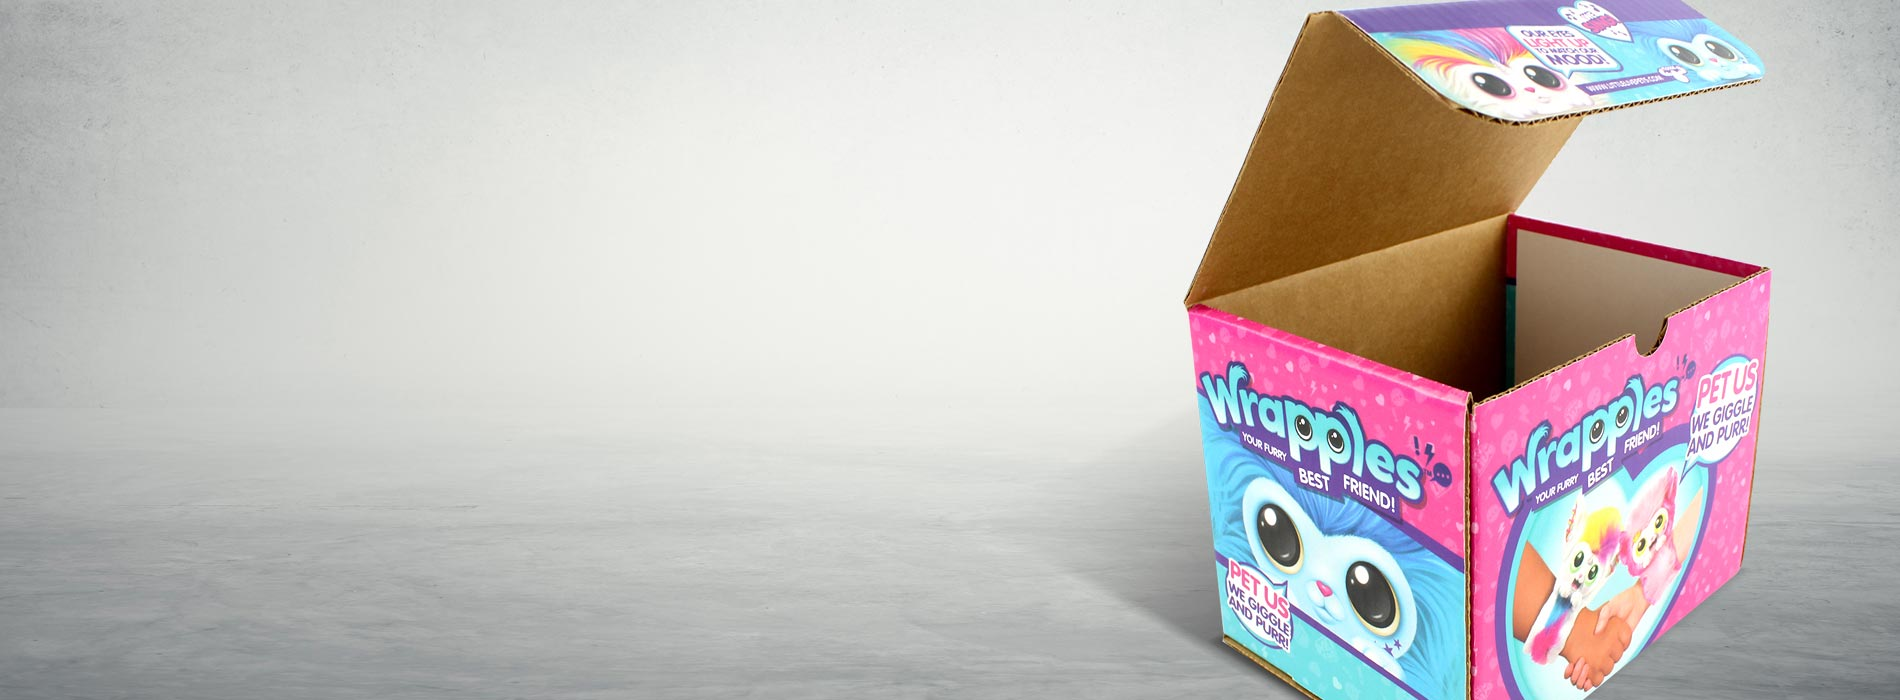 Wrapples Toy Cardboard Box